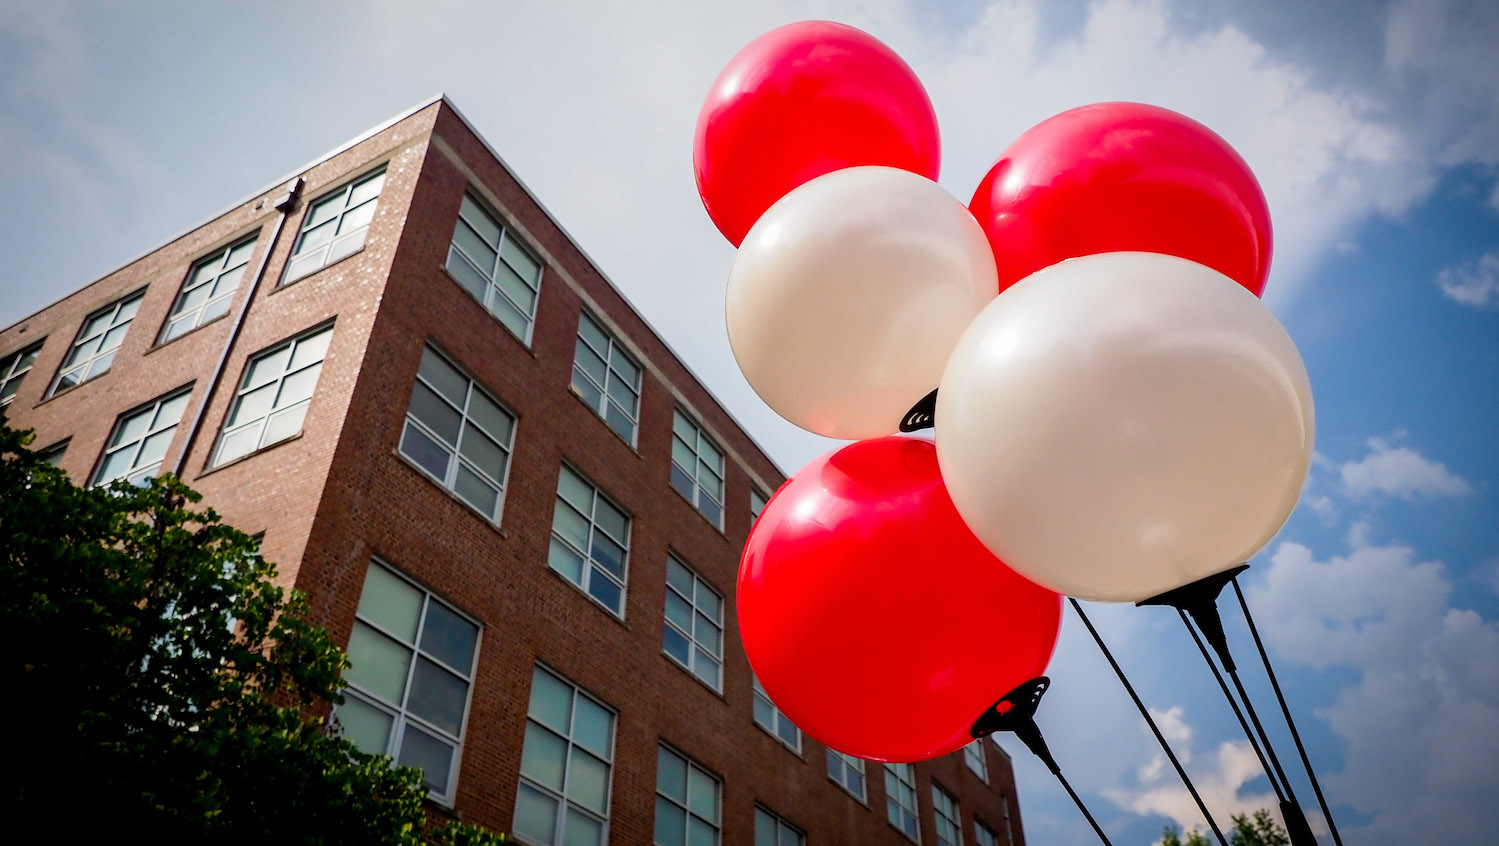 Nelson Hall and Balloons